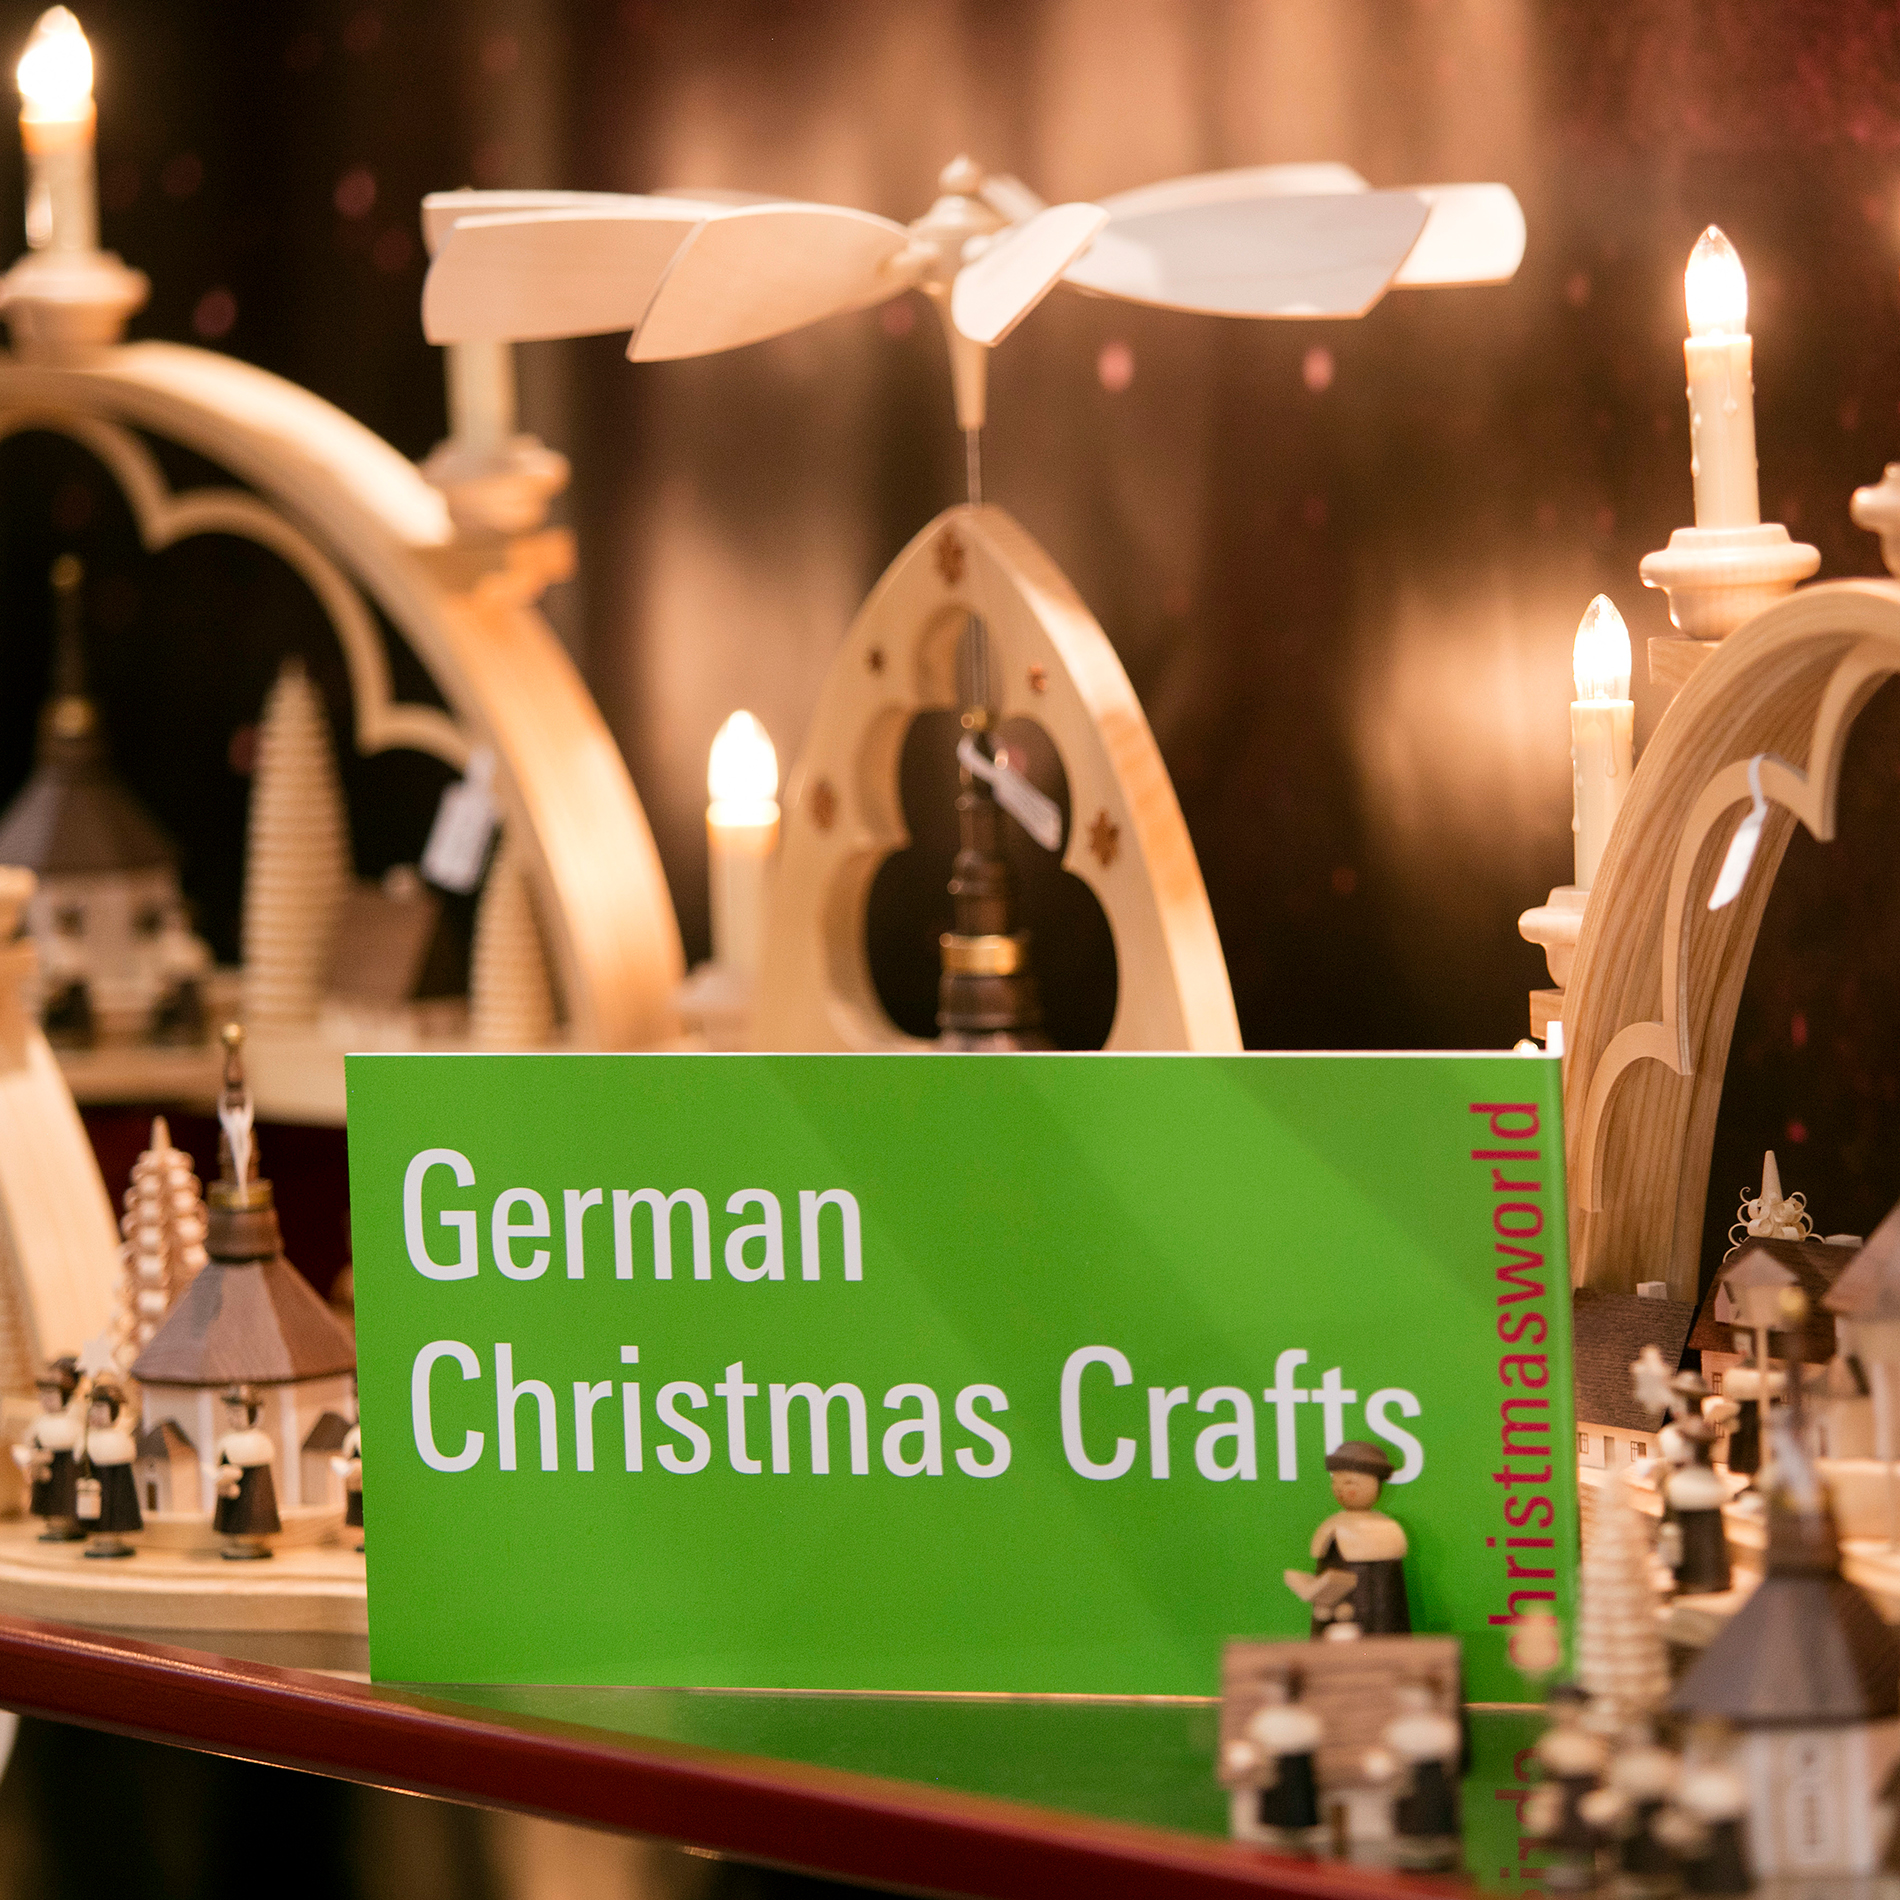 German Christmas Crafts Label an einem Stand auf der Christmasworld